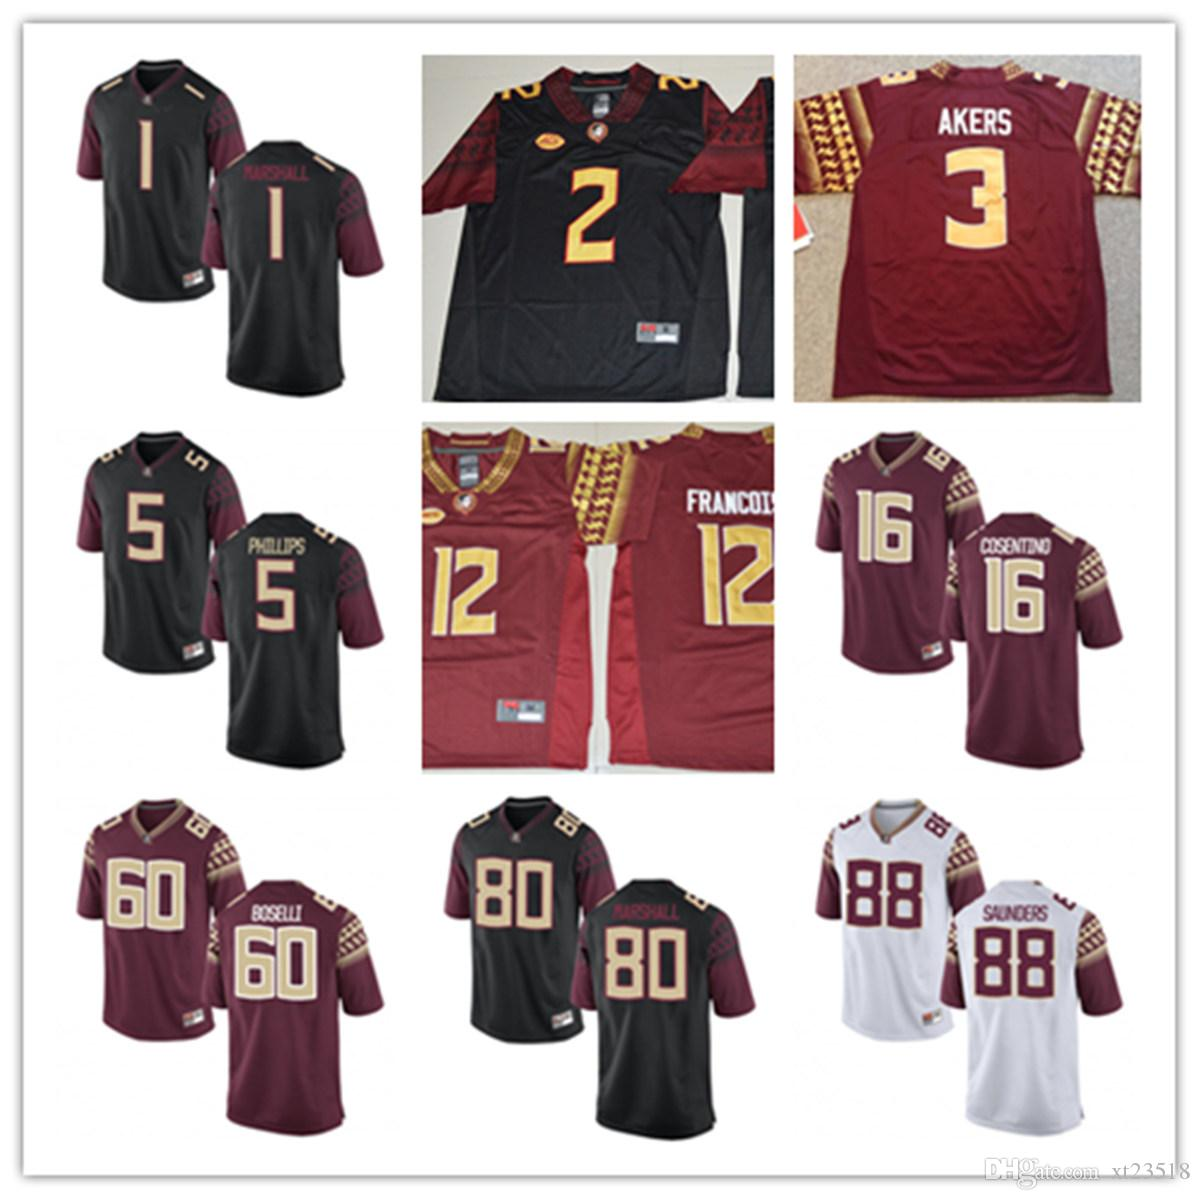 19cef0467 ... 2017 Mens Fsu Cam Akers College Football Jerseys Deion Sanders J.J.  Cosentino Deondre Francois Ncaa Acc ... Red Limited Jersey Florida State  Seminoles ...